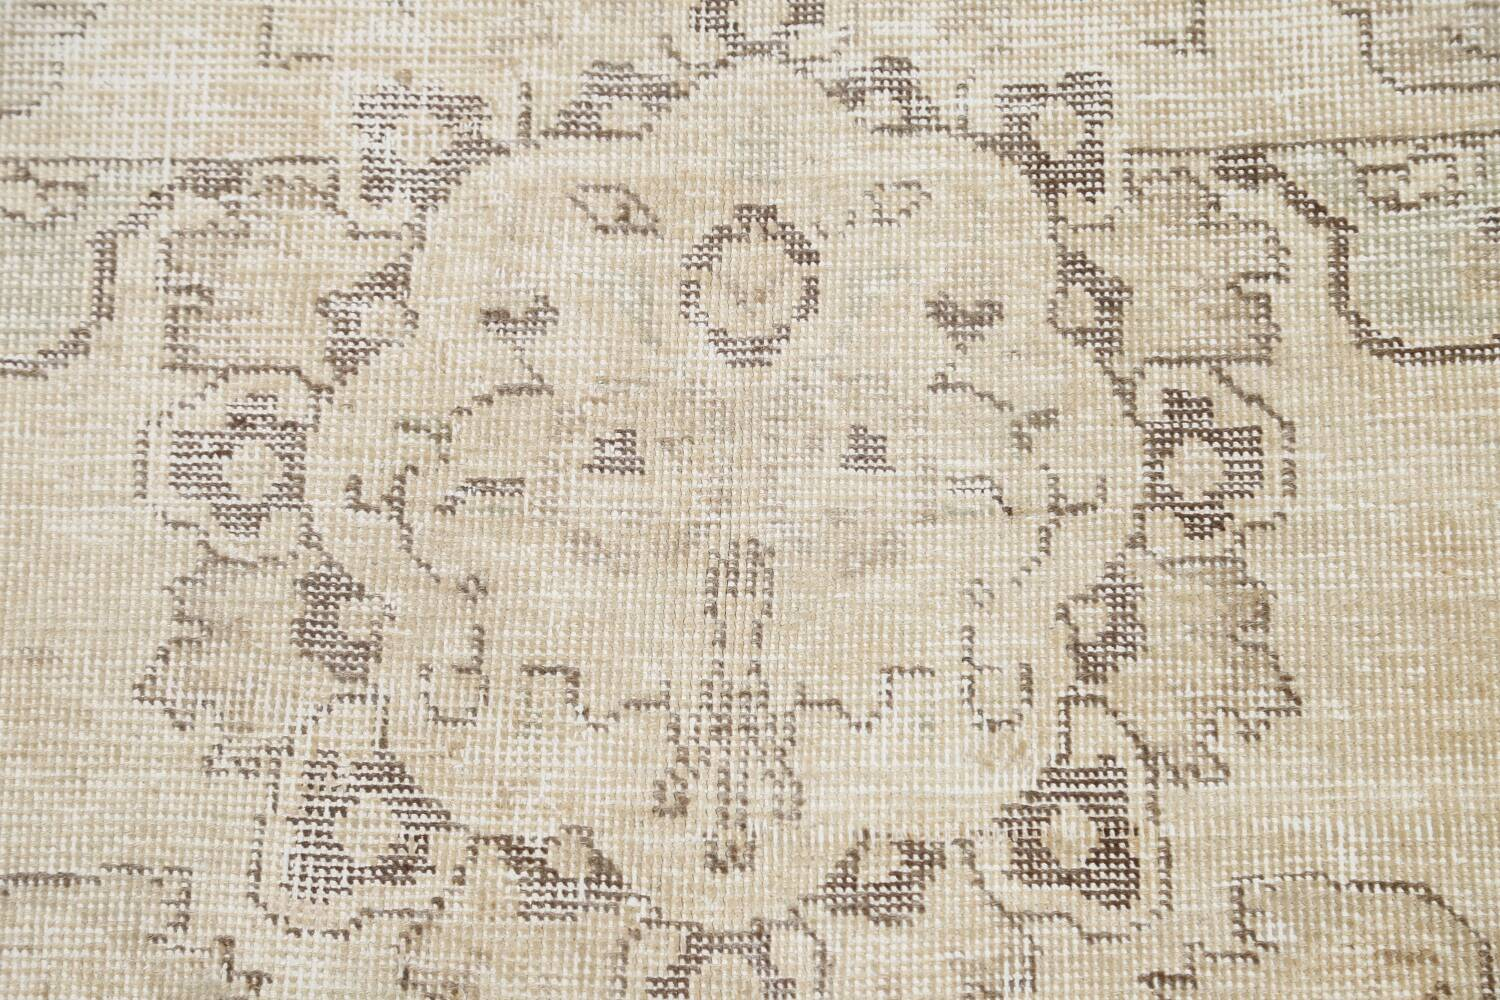 Muted Distressed Tabriz Persian Area Rug 10x12 image 9